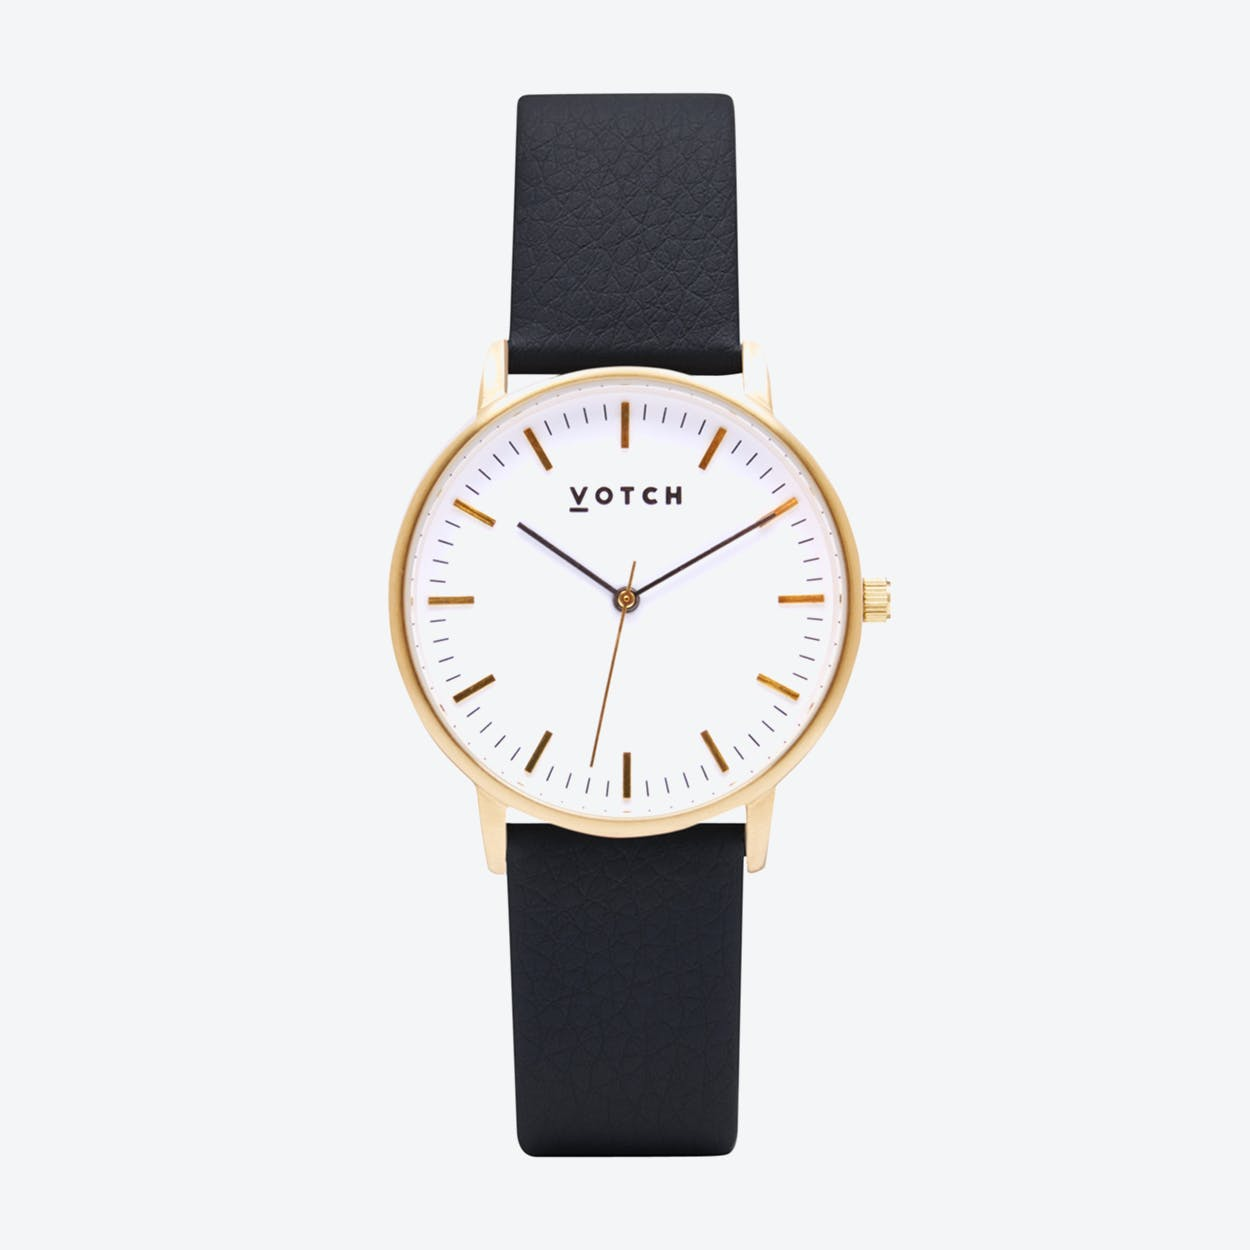 Intense Classic Watch in Gold with White Face and Black Vegan Leather Strap, 36mm